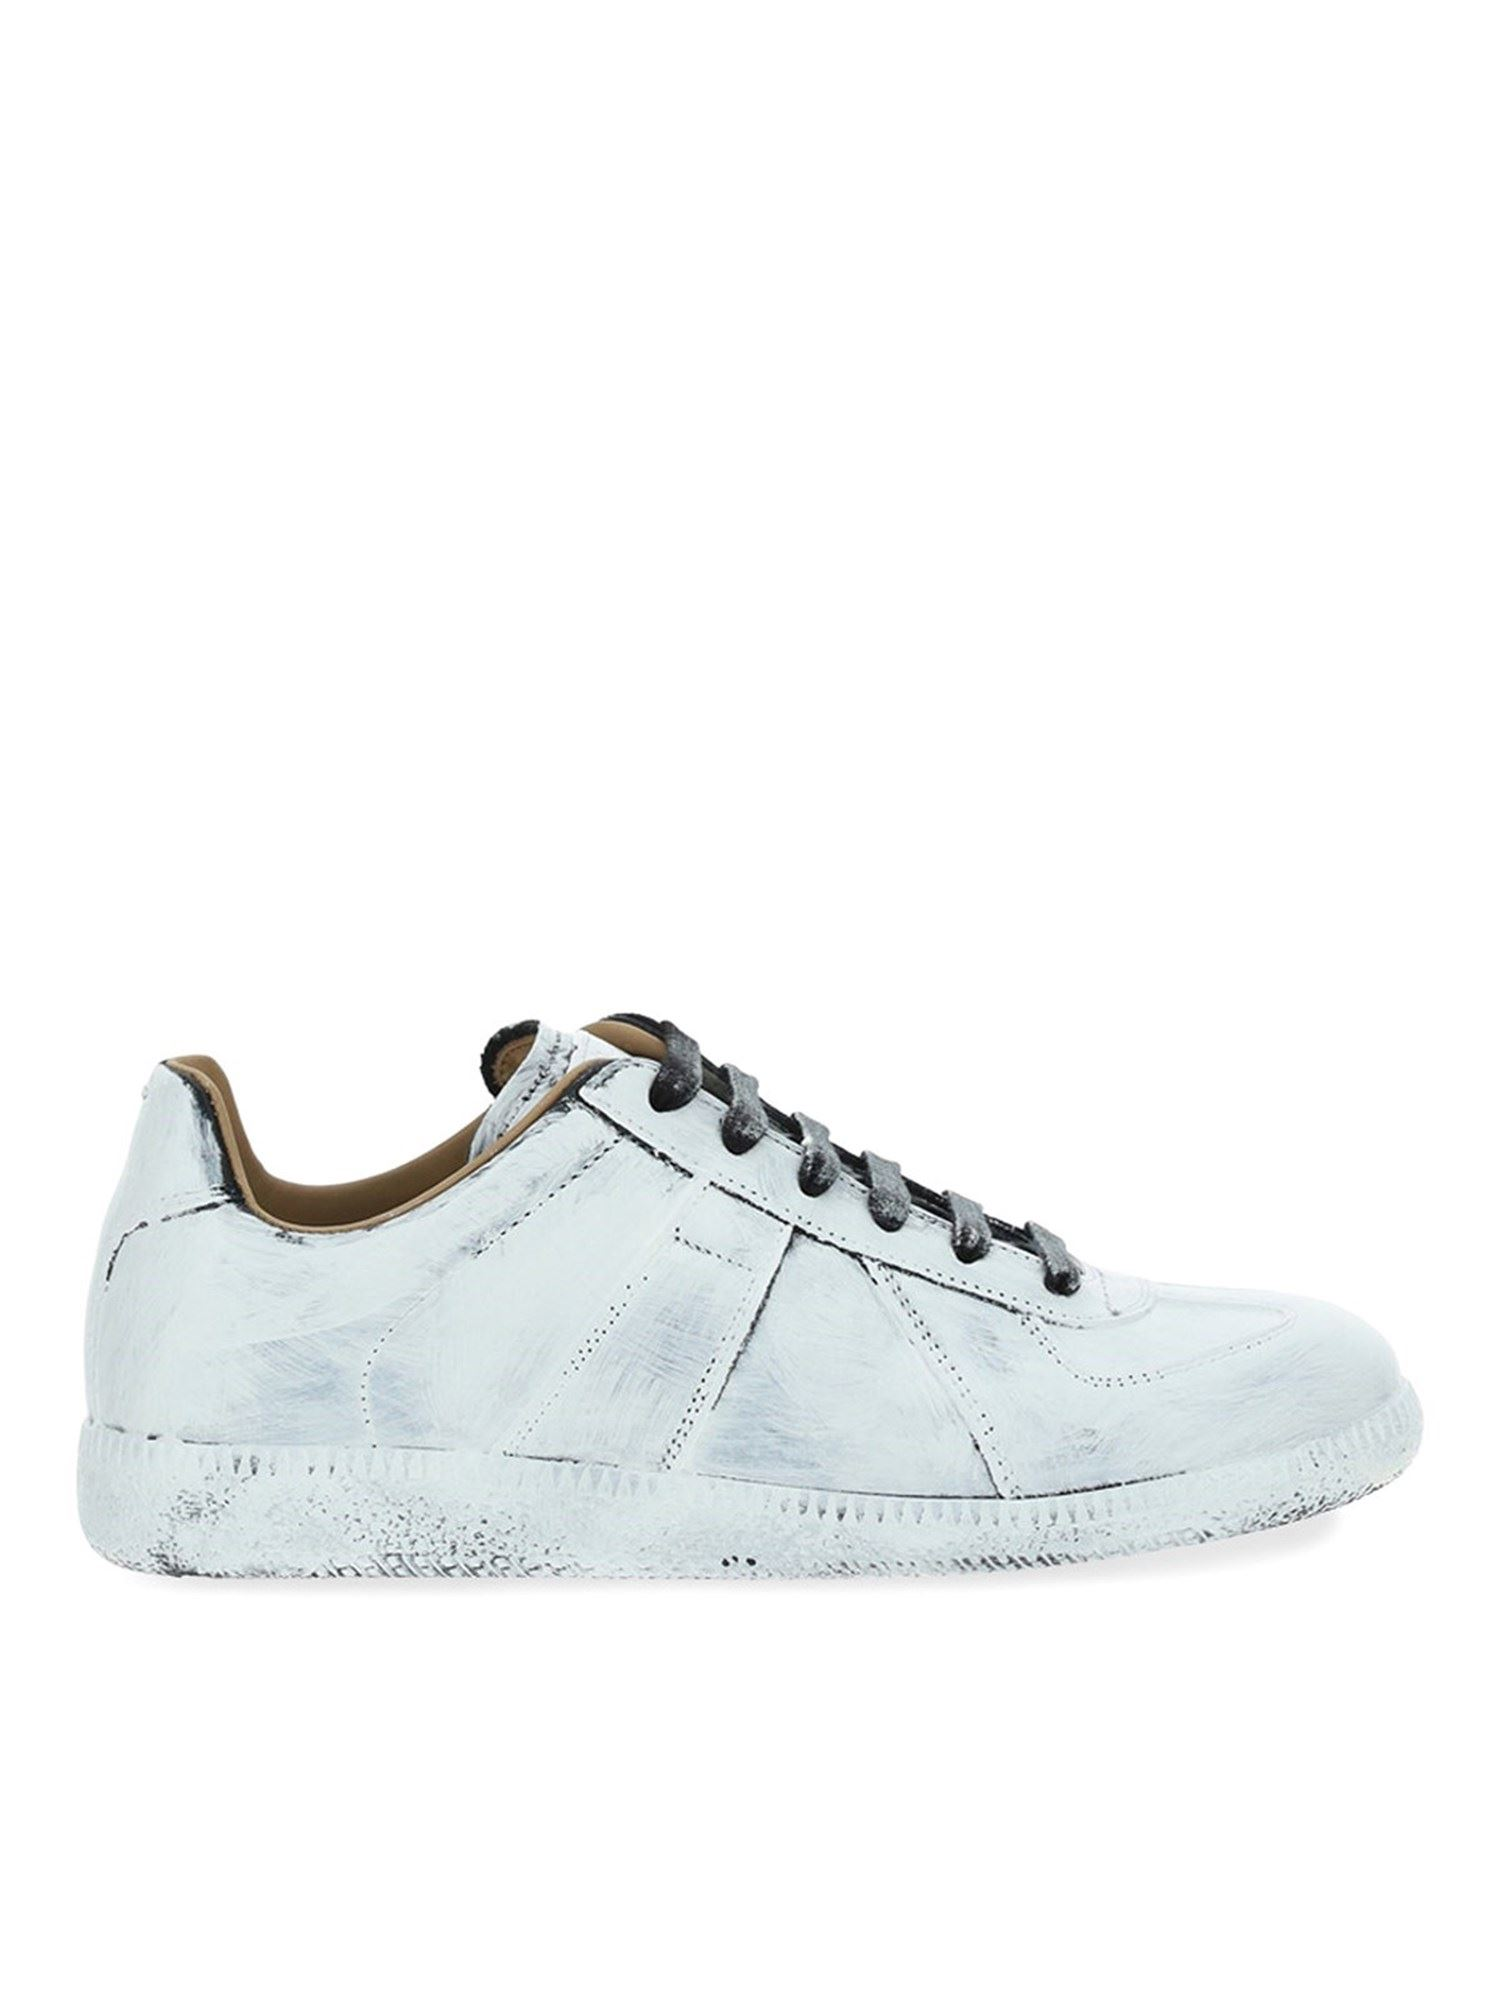 Maison Margiela Low tops PAINTED EFFECT SNEAKERS IN WHITE